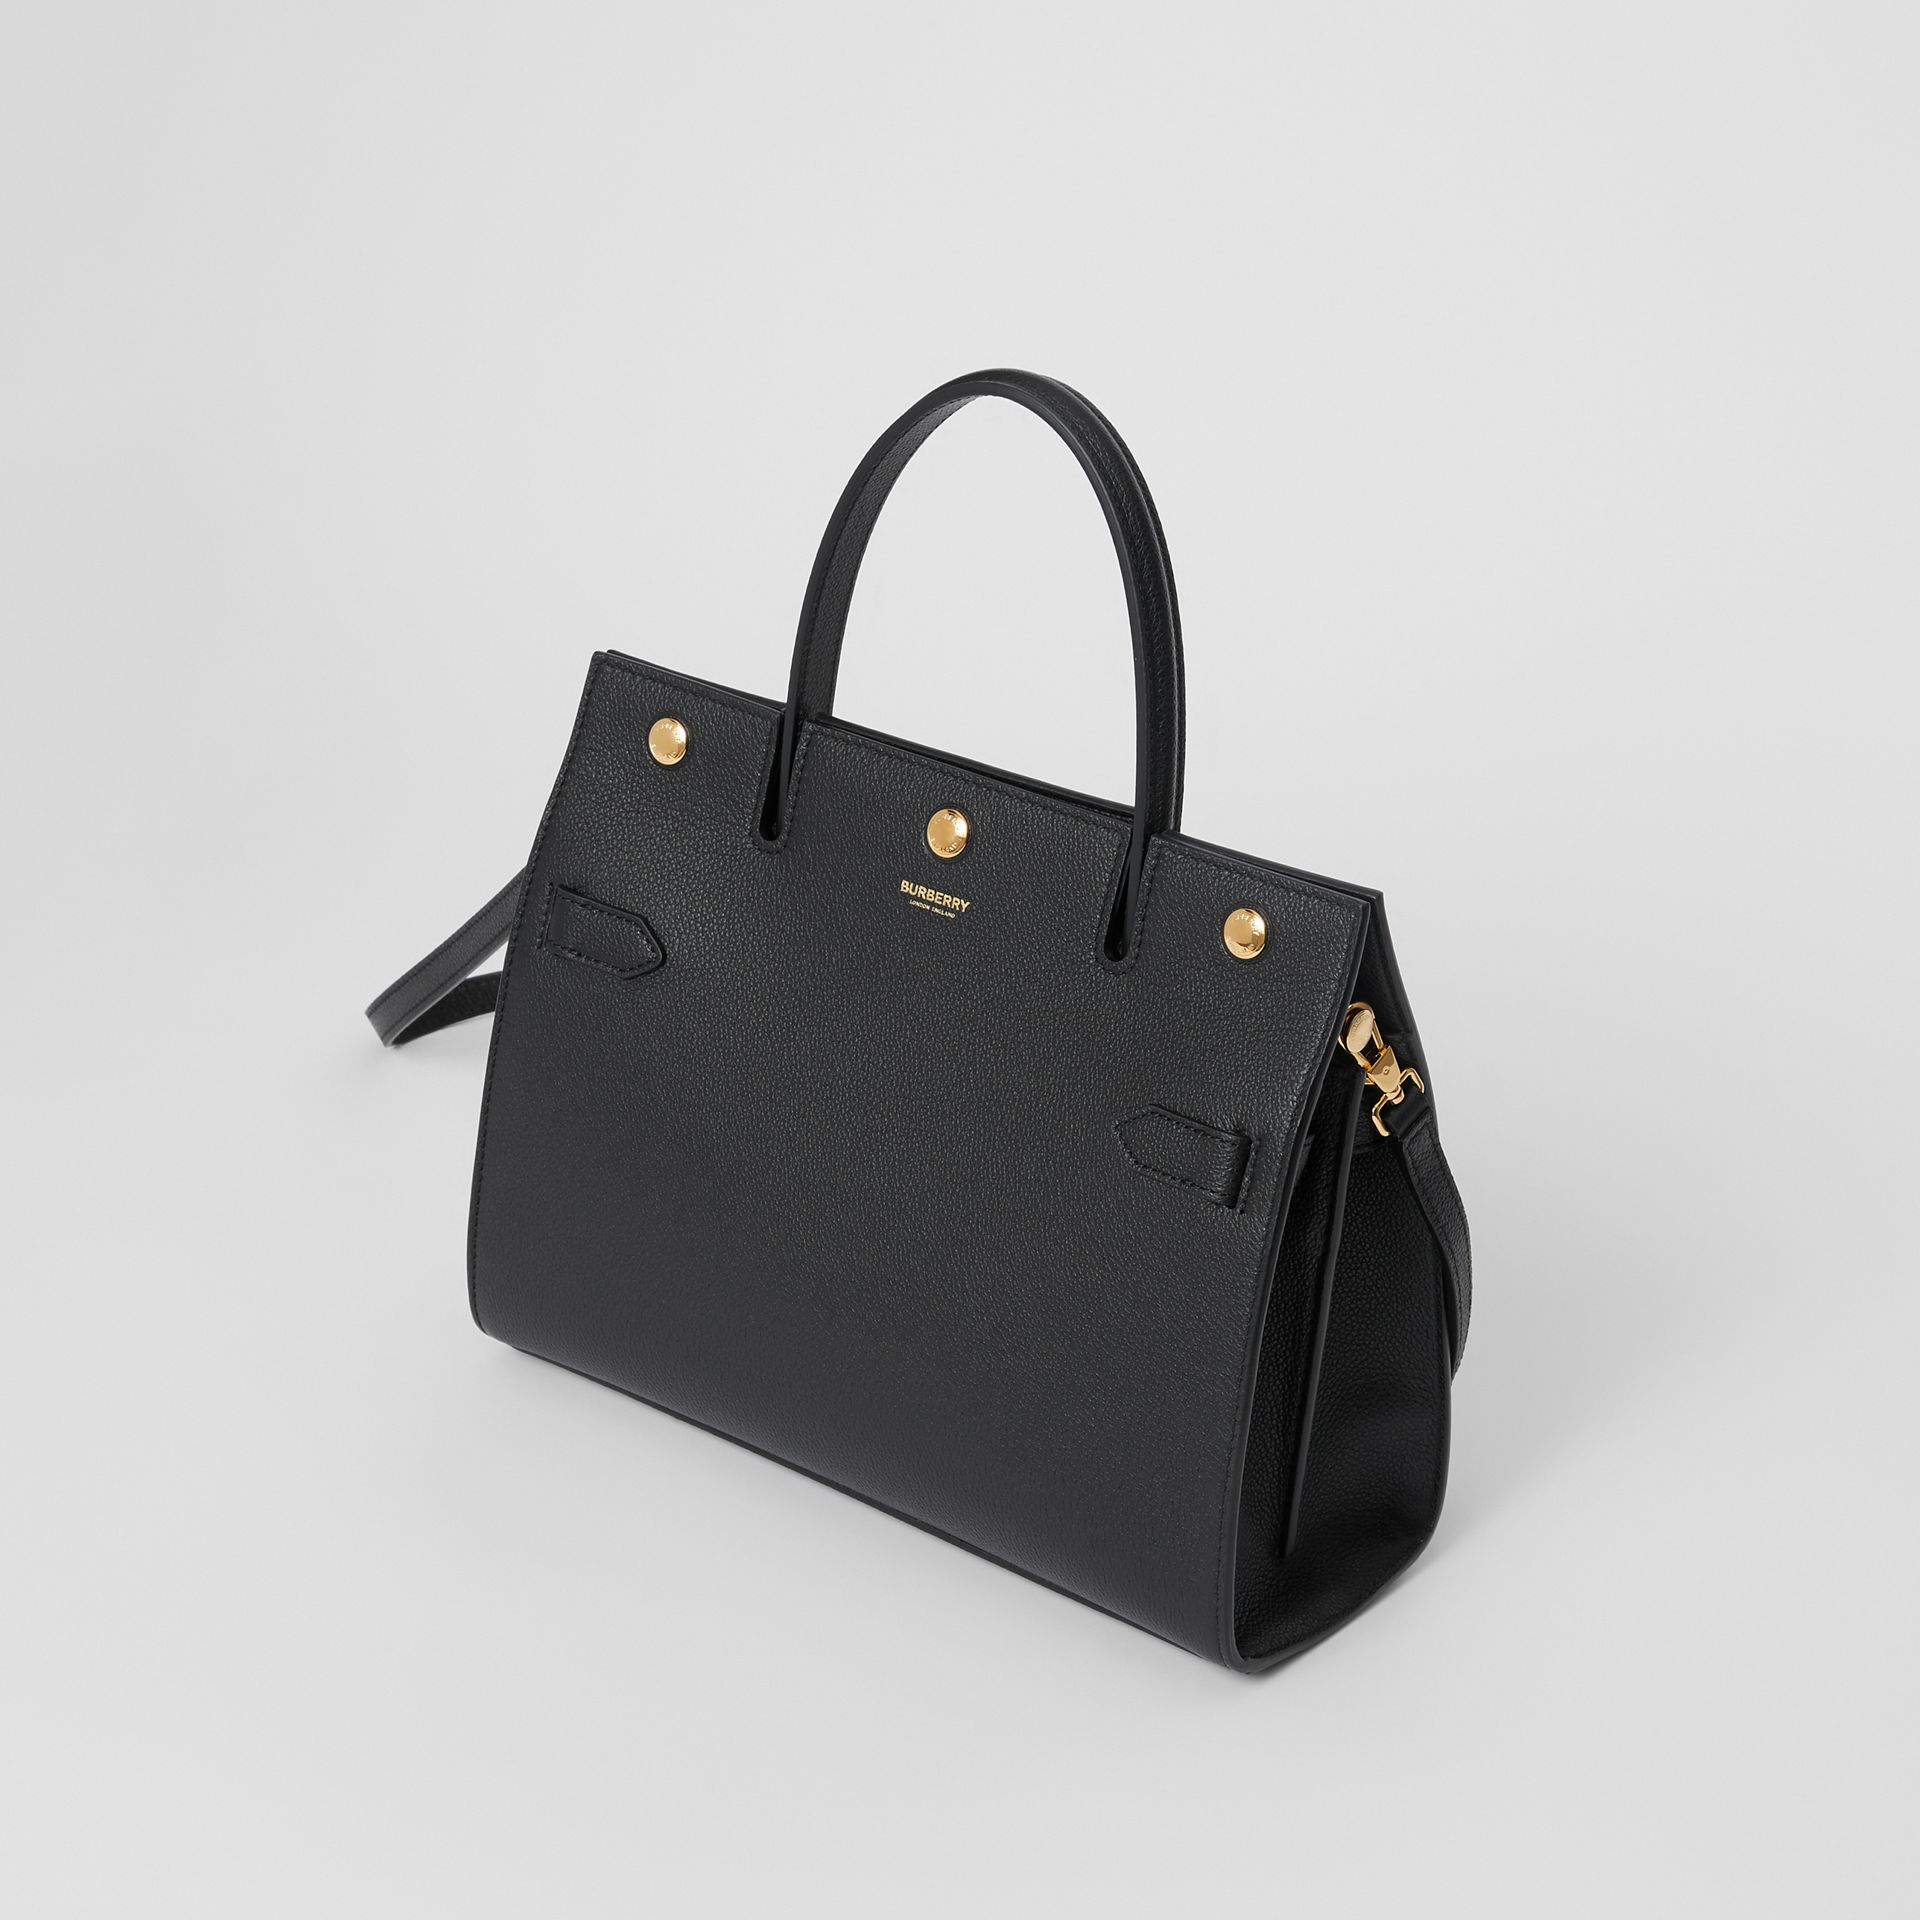 Small Leather Title Bag in Black - Women | Burberry - gallery image 3